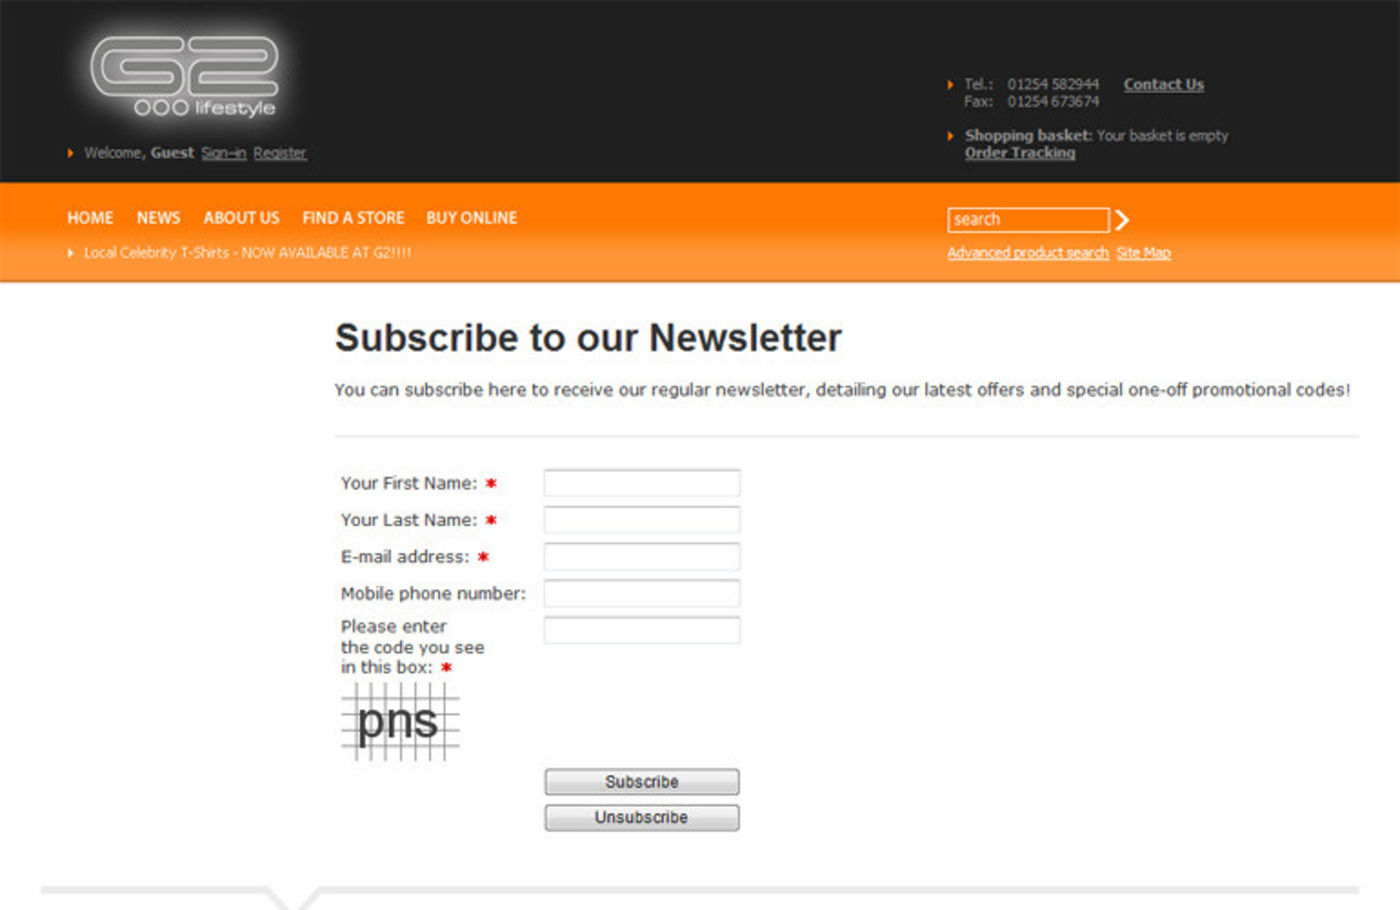 G2 Lifestyle Form: Subscribe to our Newsletter